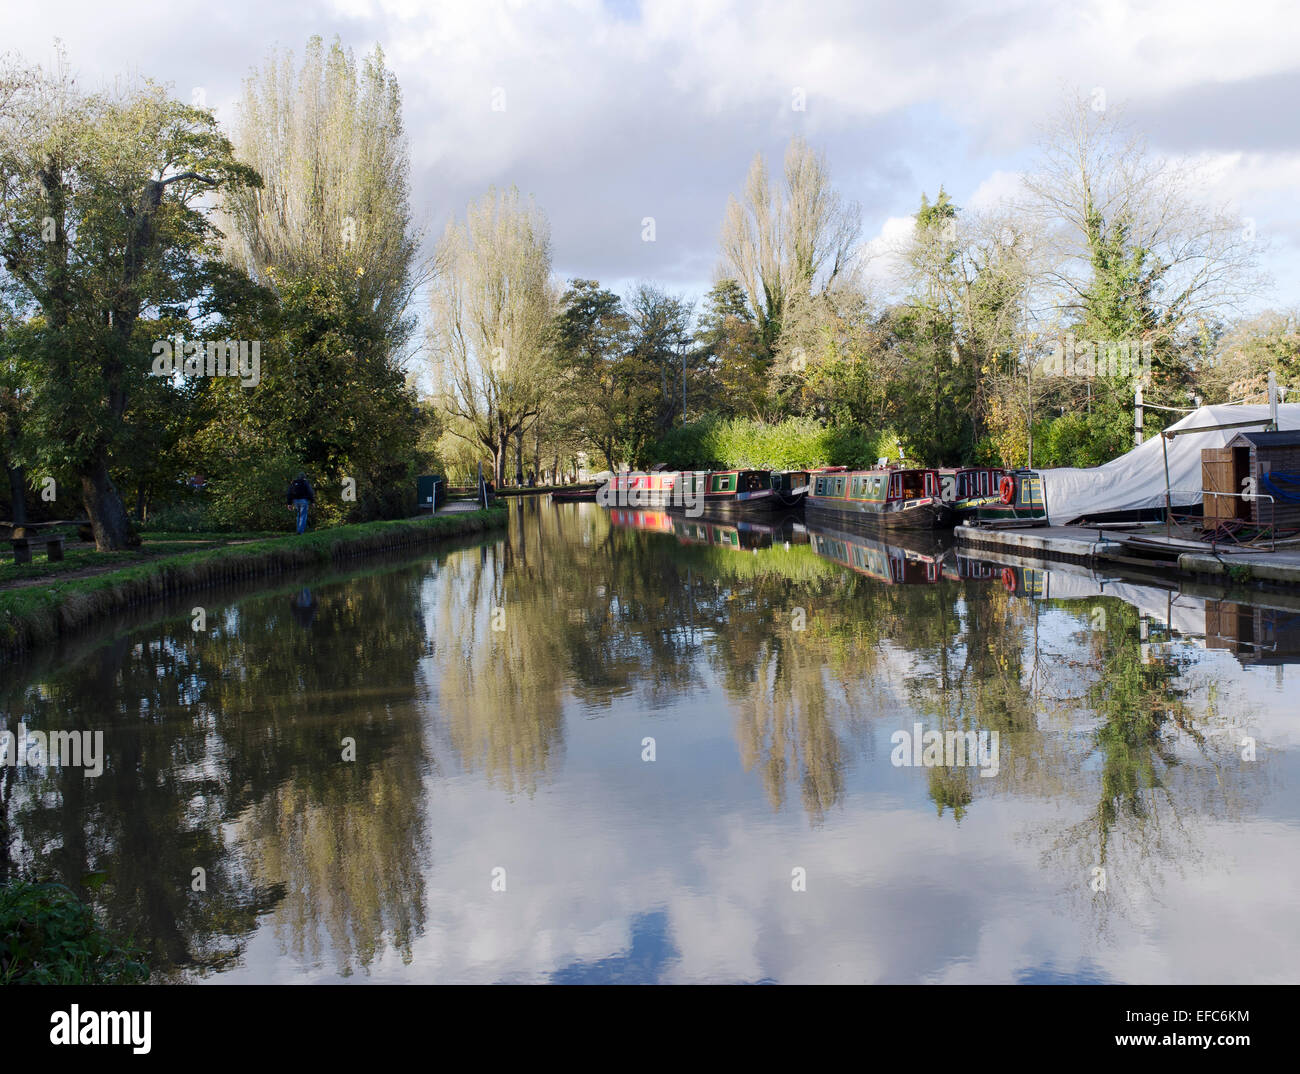 The Wey Navigation at Guildford, Surrey - 2 - Stock Image